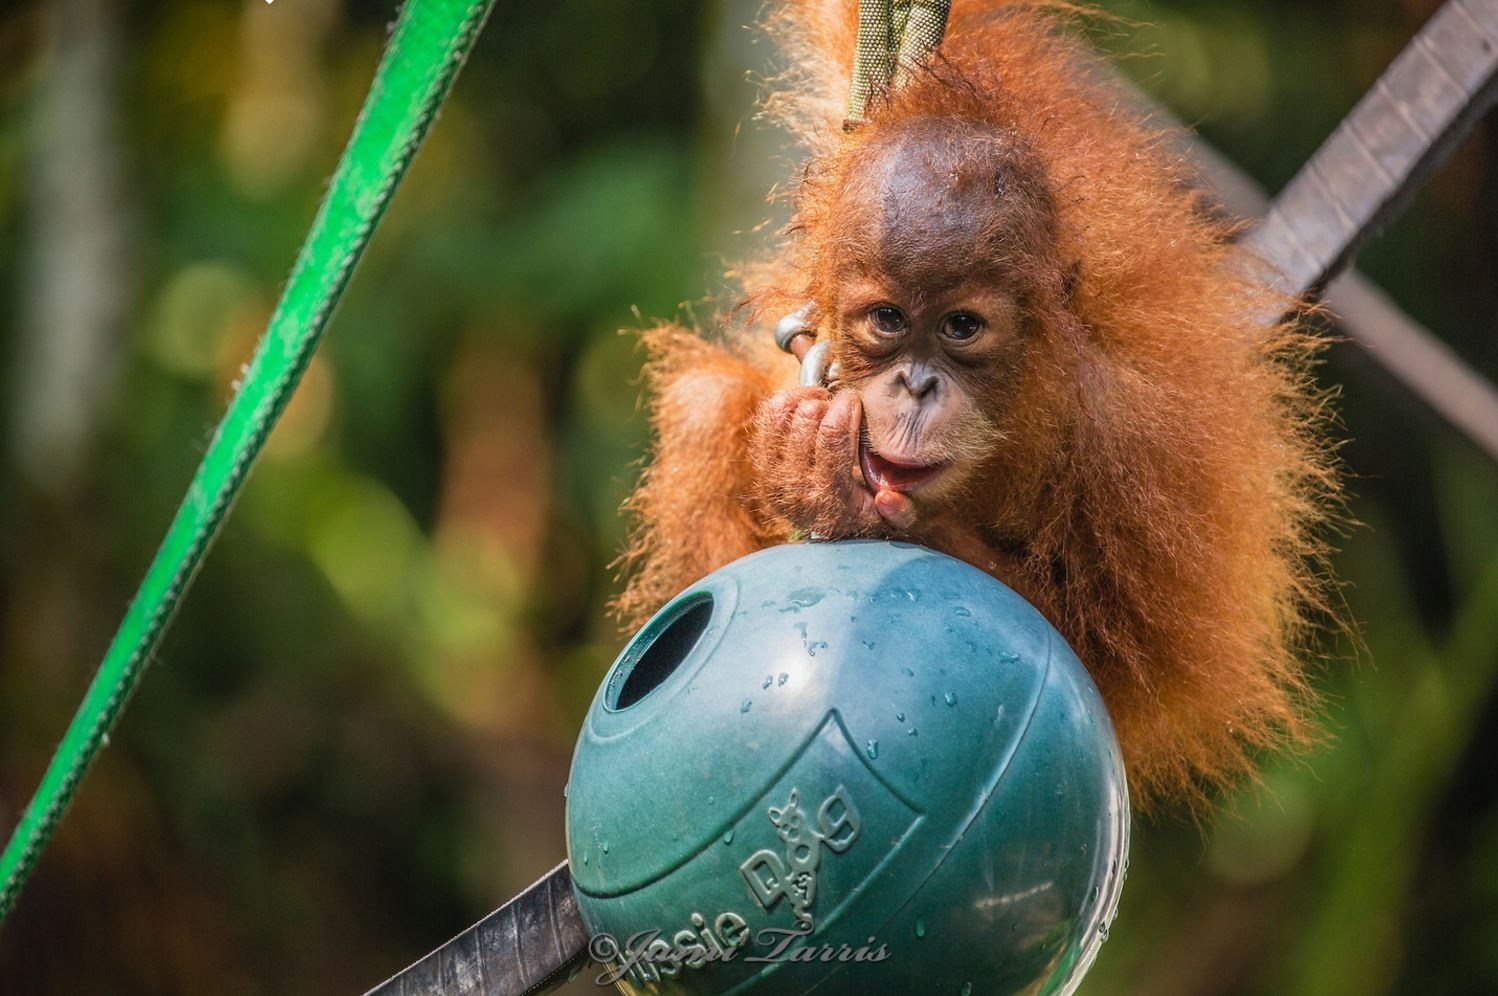 Image: A darling tiny baby orangutan with a ball